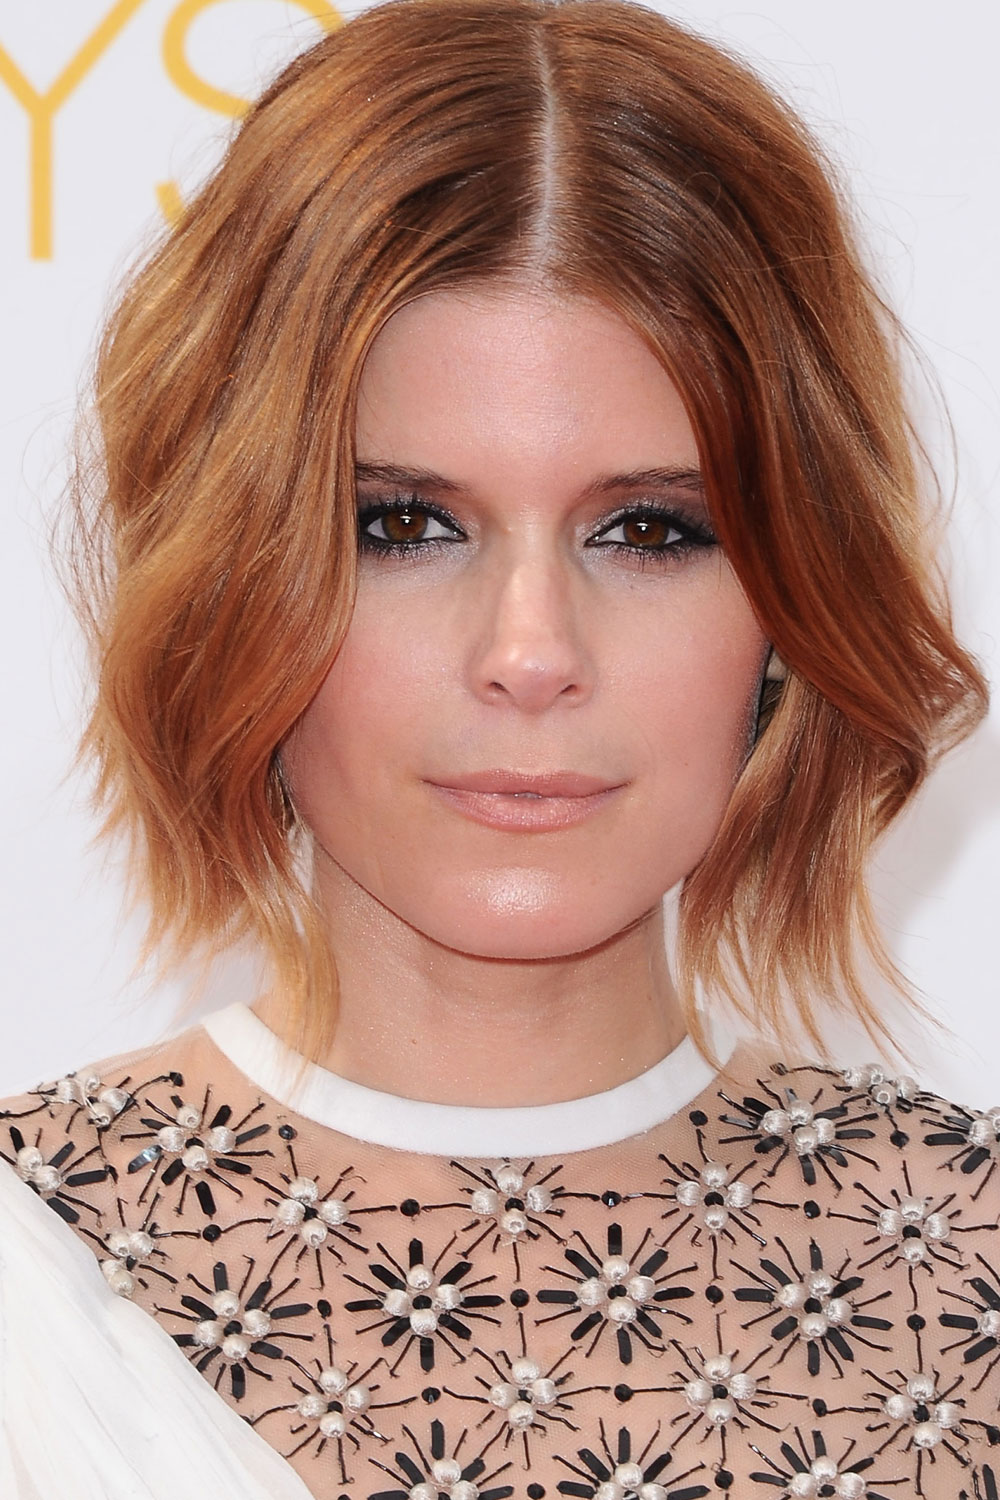 Hairstyles For Round Faces the best hairstyle for round faces Hairstyles For Round Faces The Best Celebrity Styles To Inspire You